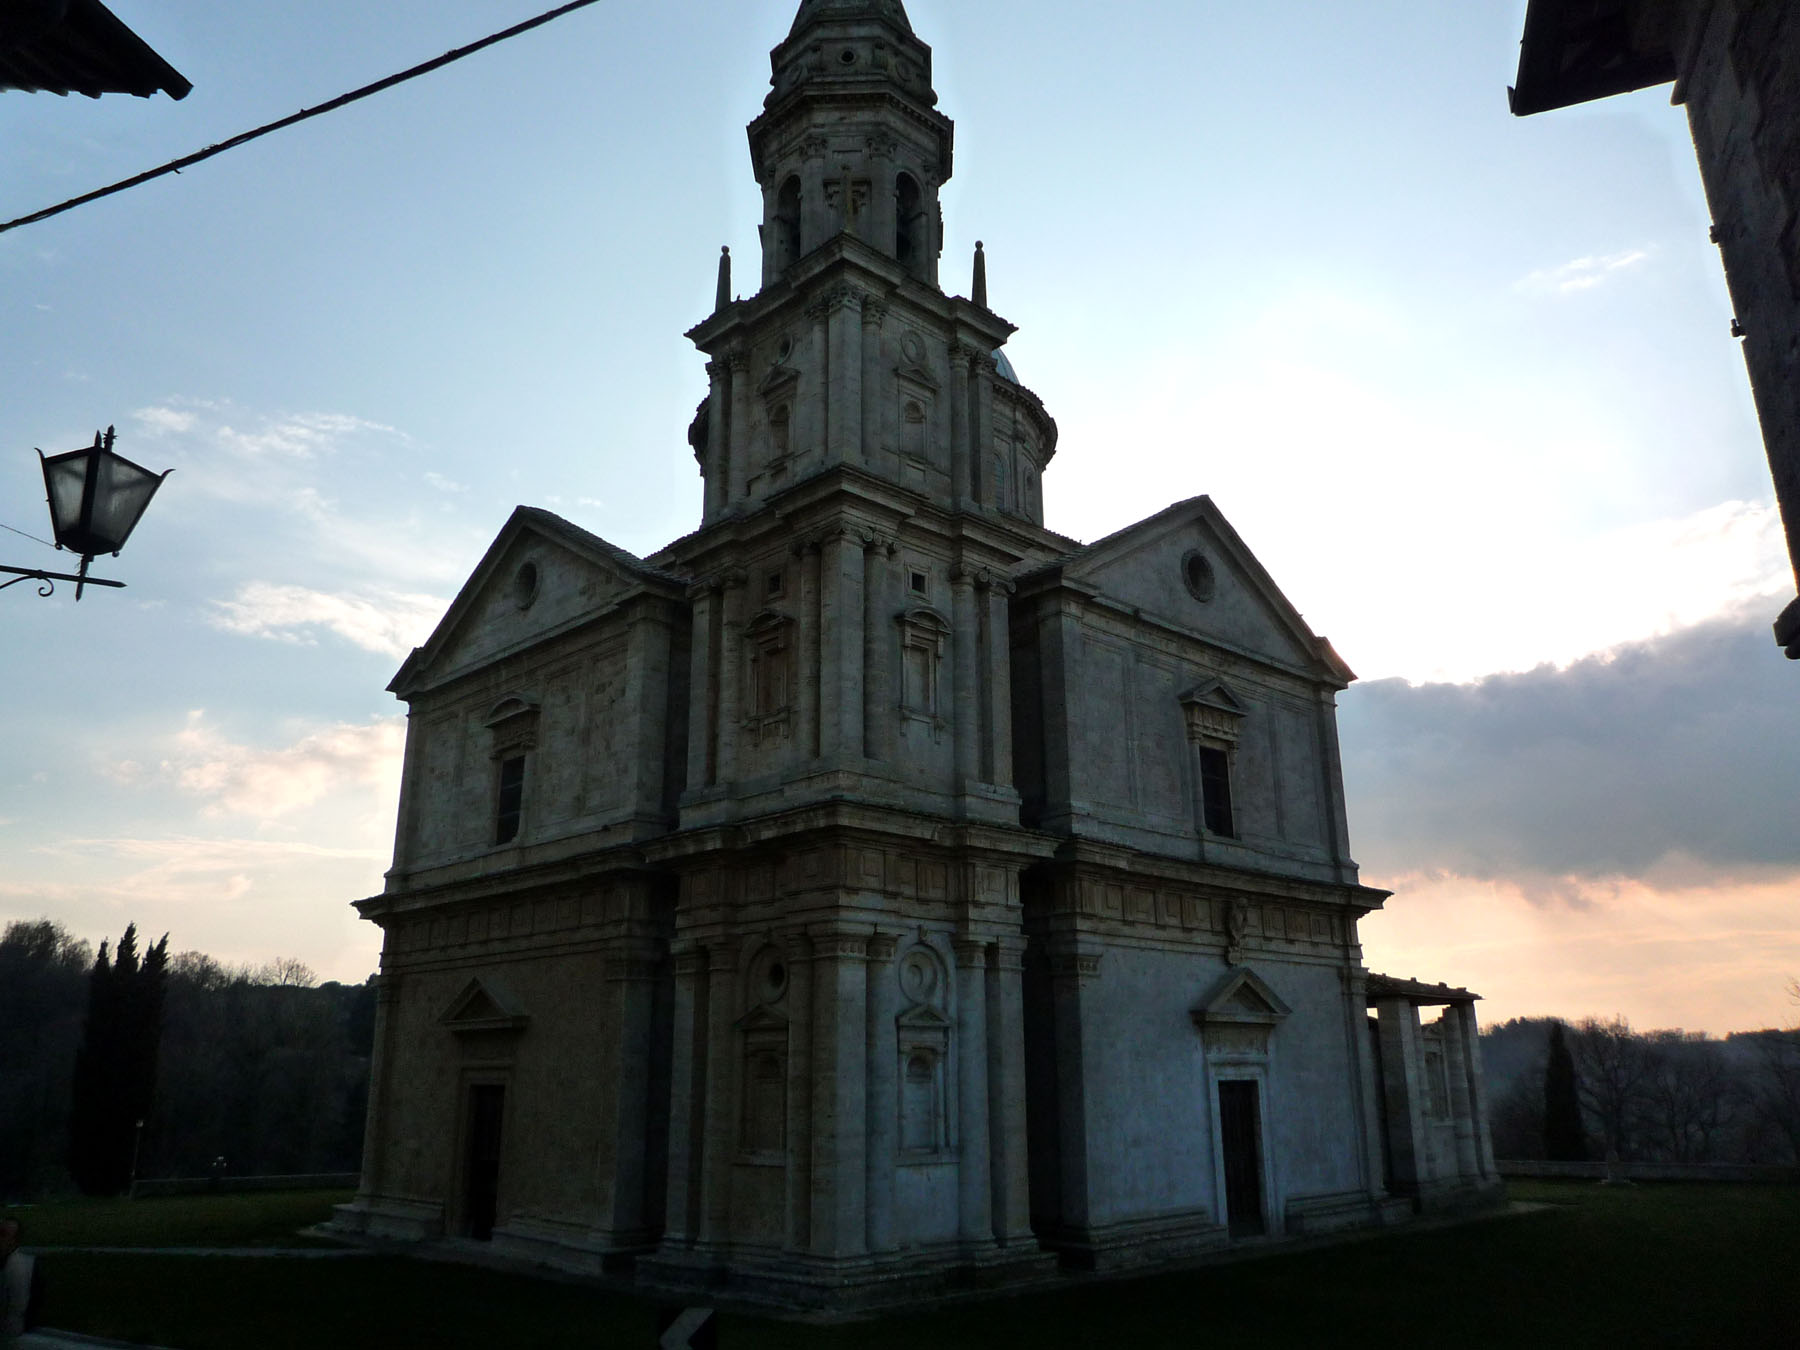 San Biagio montepulciano from right side at sunset